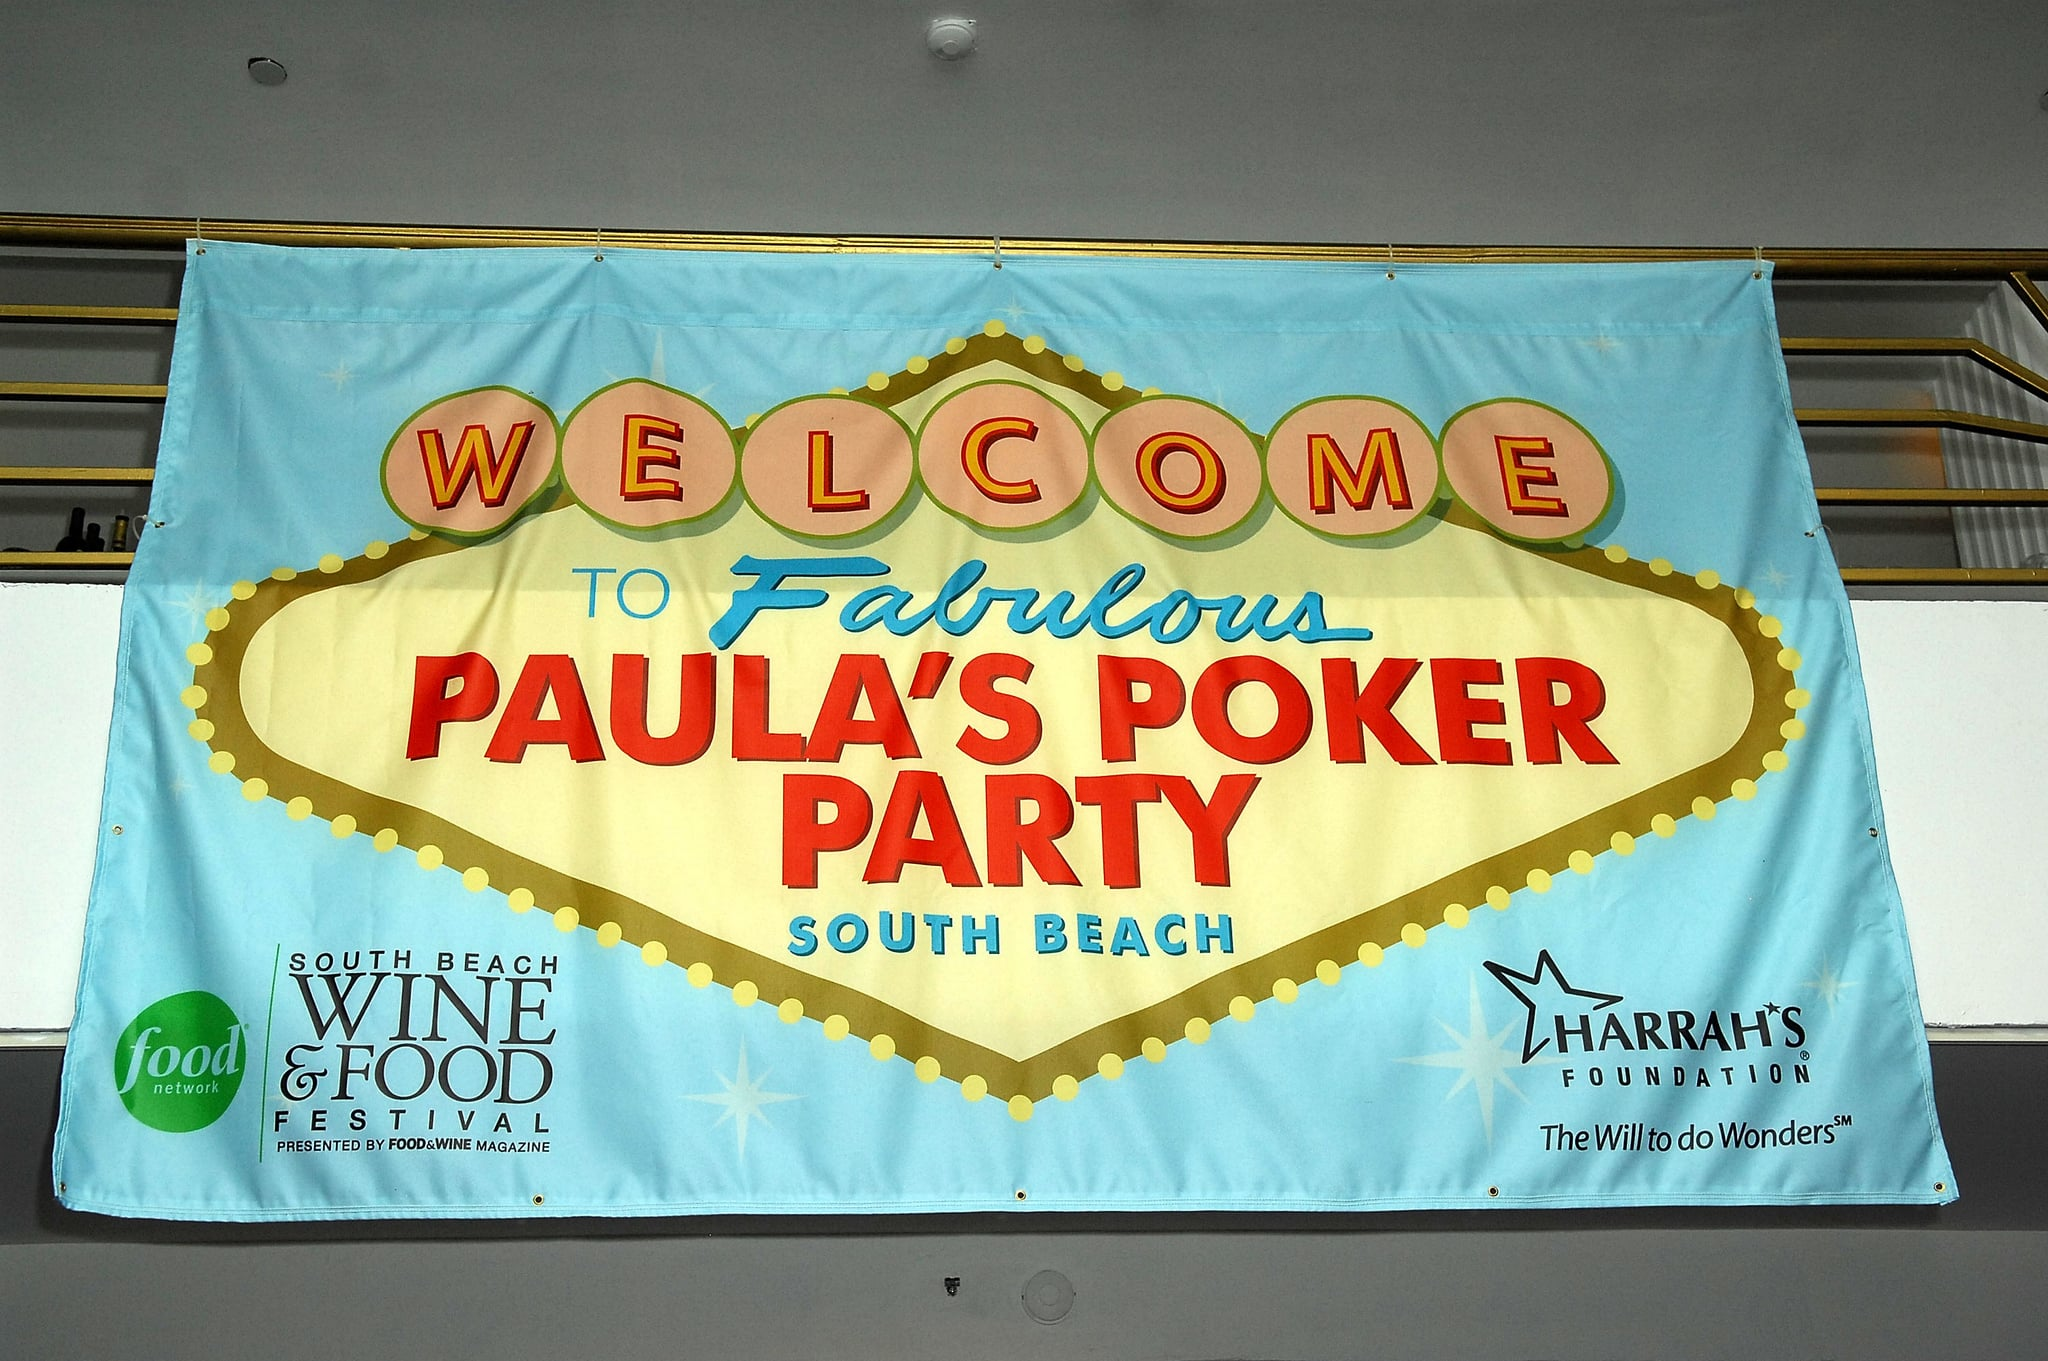 Paula's Poker Party at The South Beach Wine & Food Festival